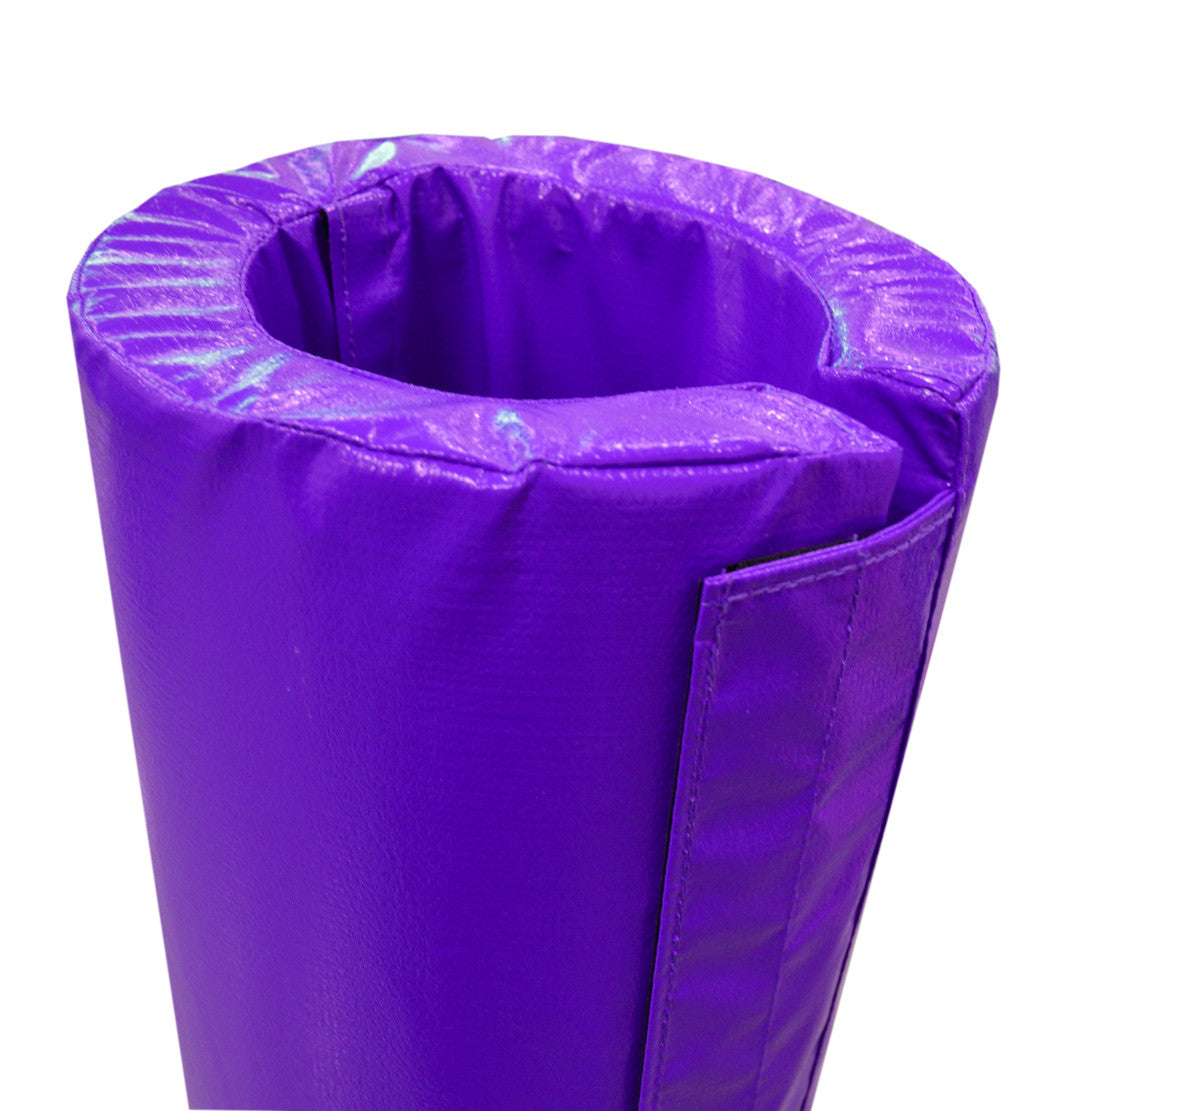 "4' Tall Pole Pad, 4"" Diameter Velcro Attachment"